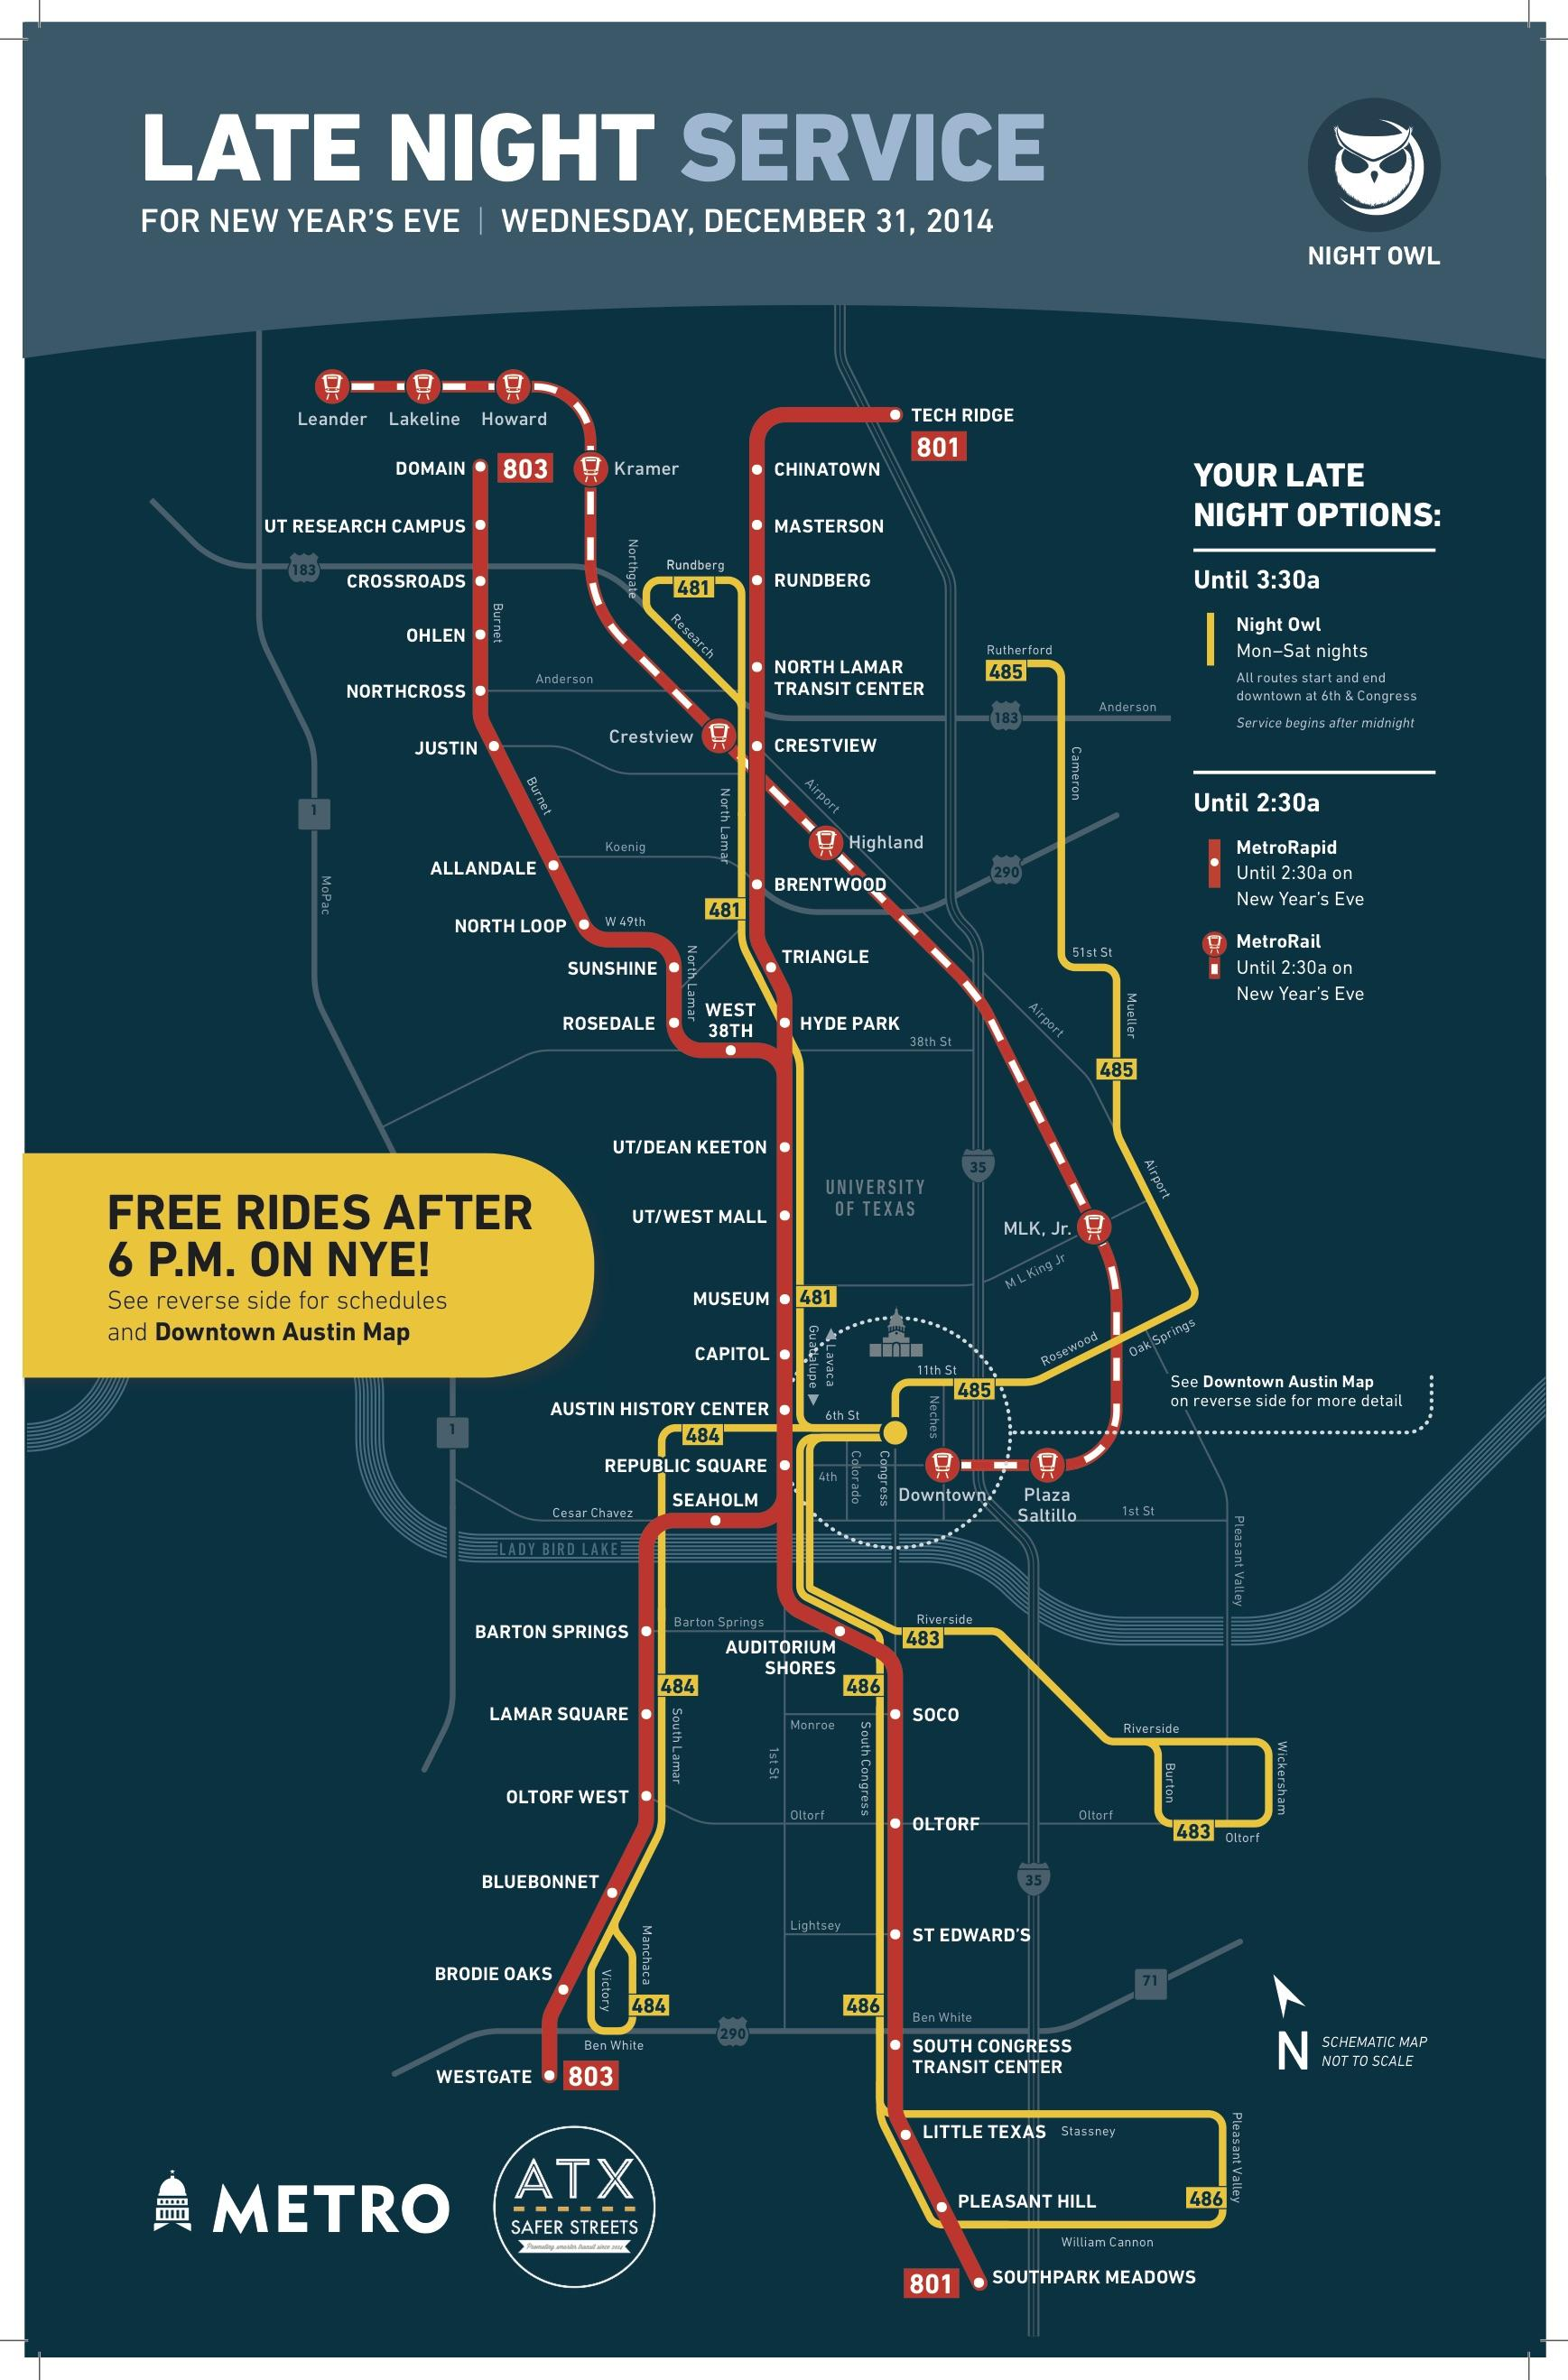 Eve 6 Bring The Night On New Years Eve Late Night Service Map Brochure